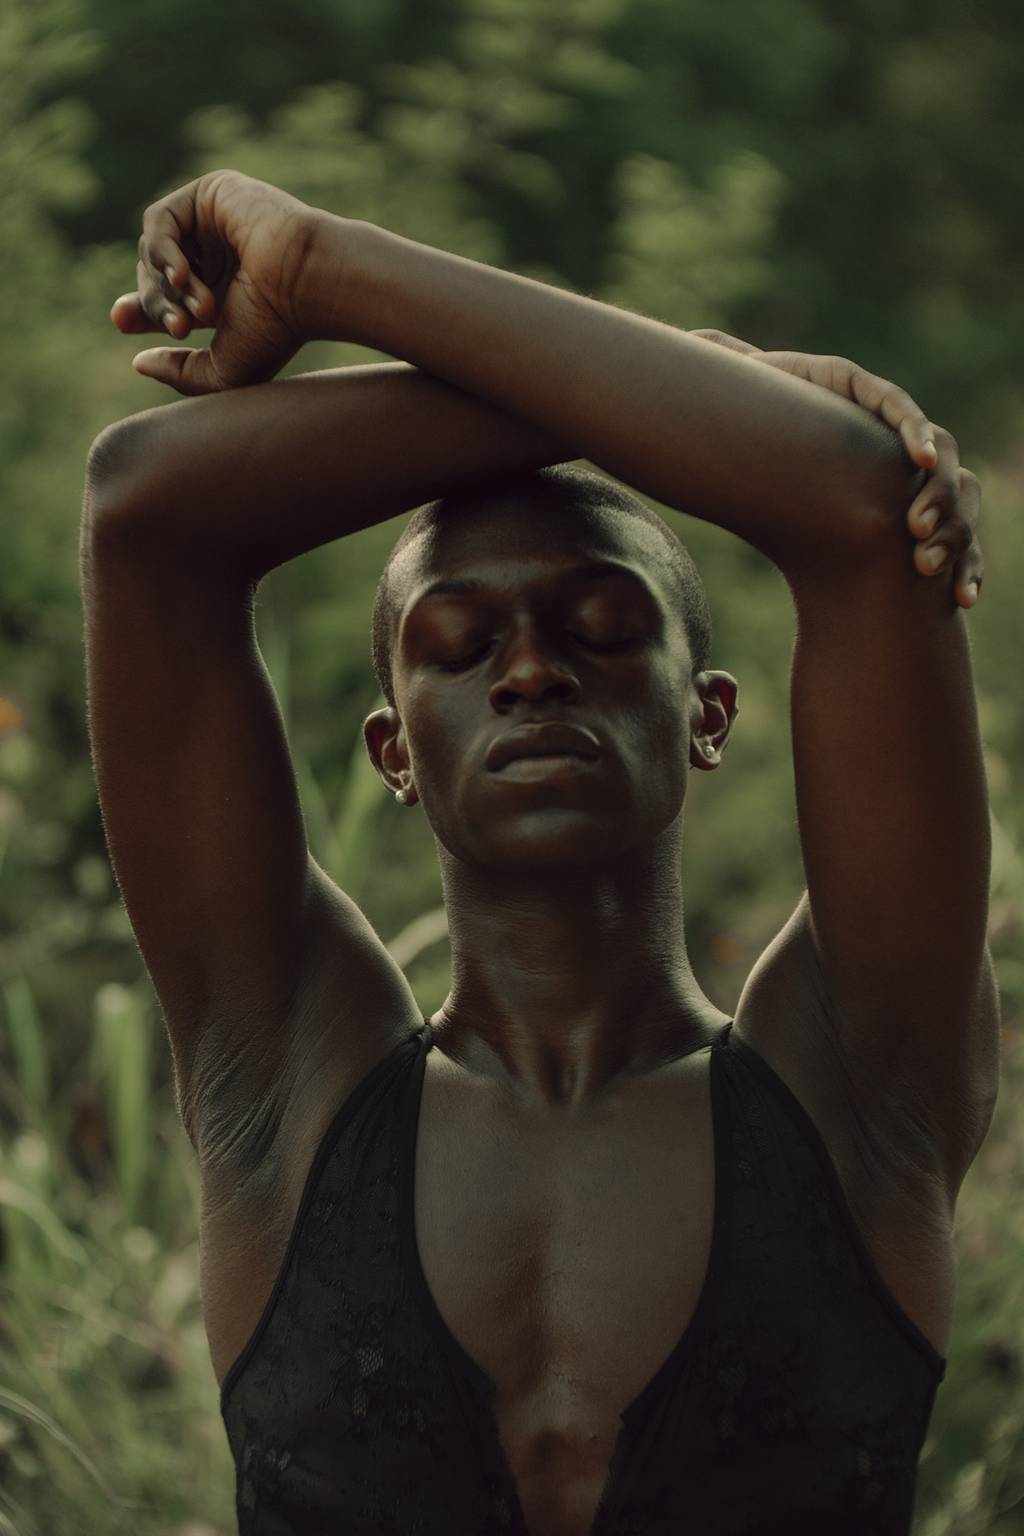 Up, Close and Personal Portraits With Lance Langel and the Petzval 80.5 MKII